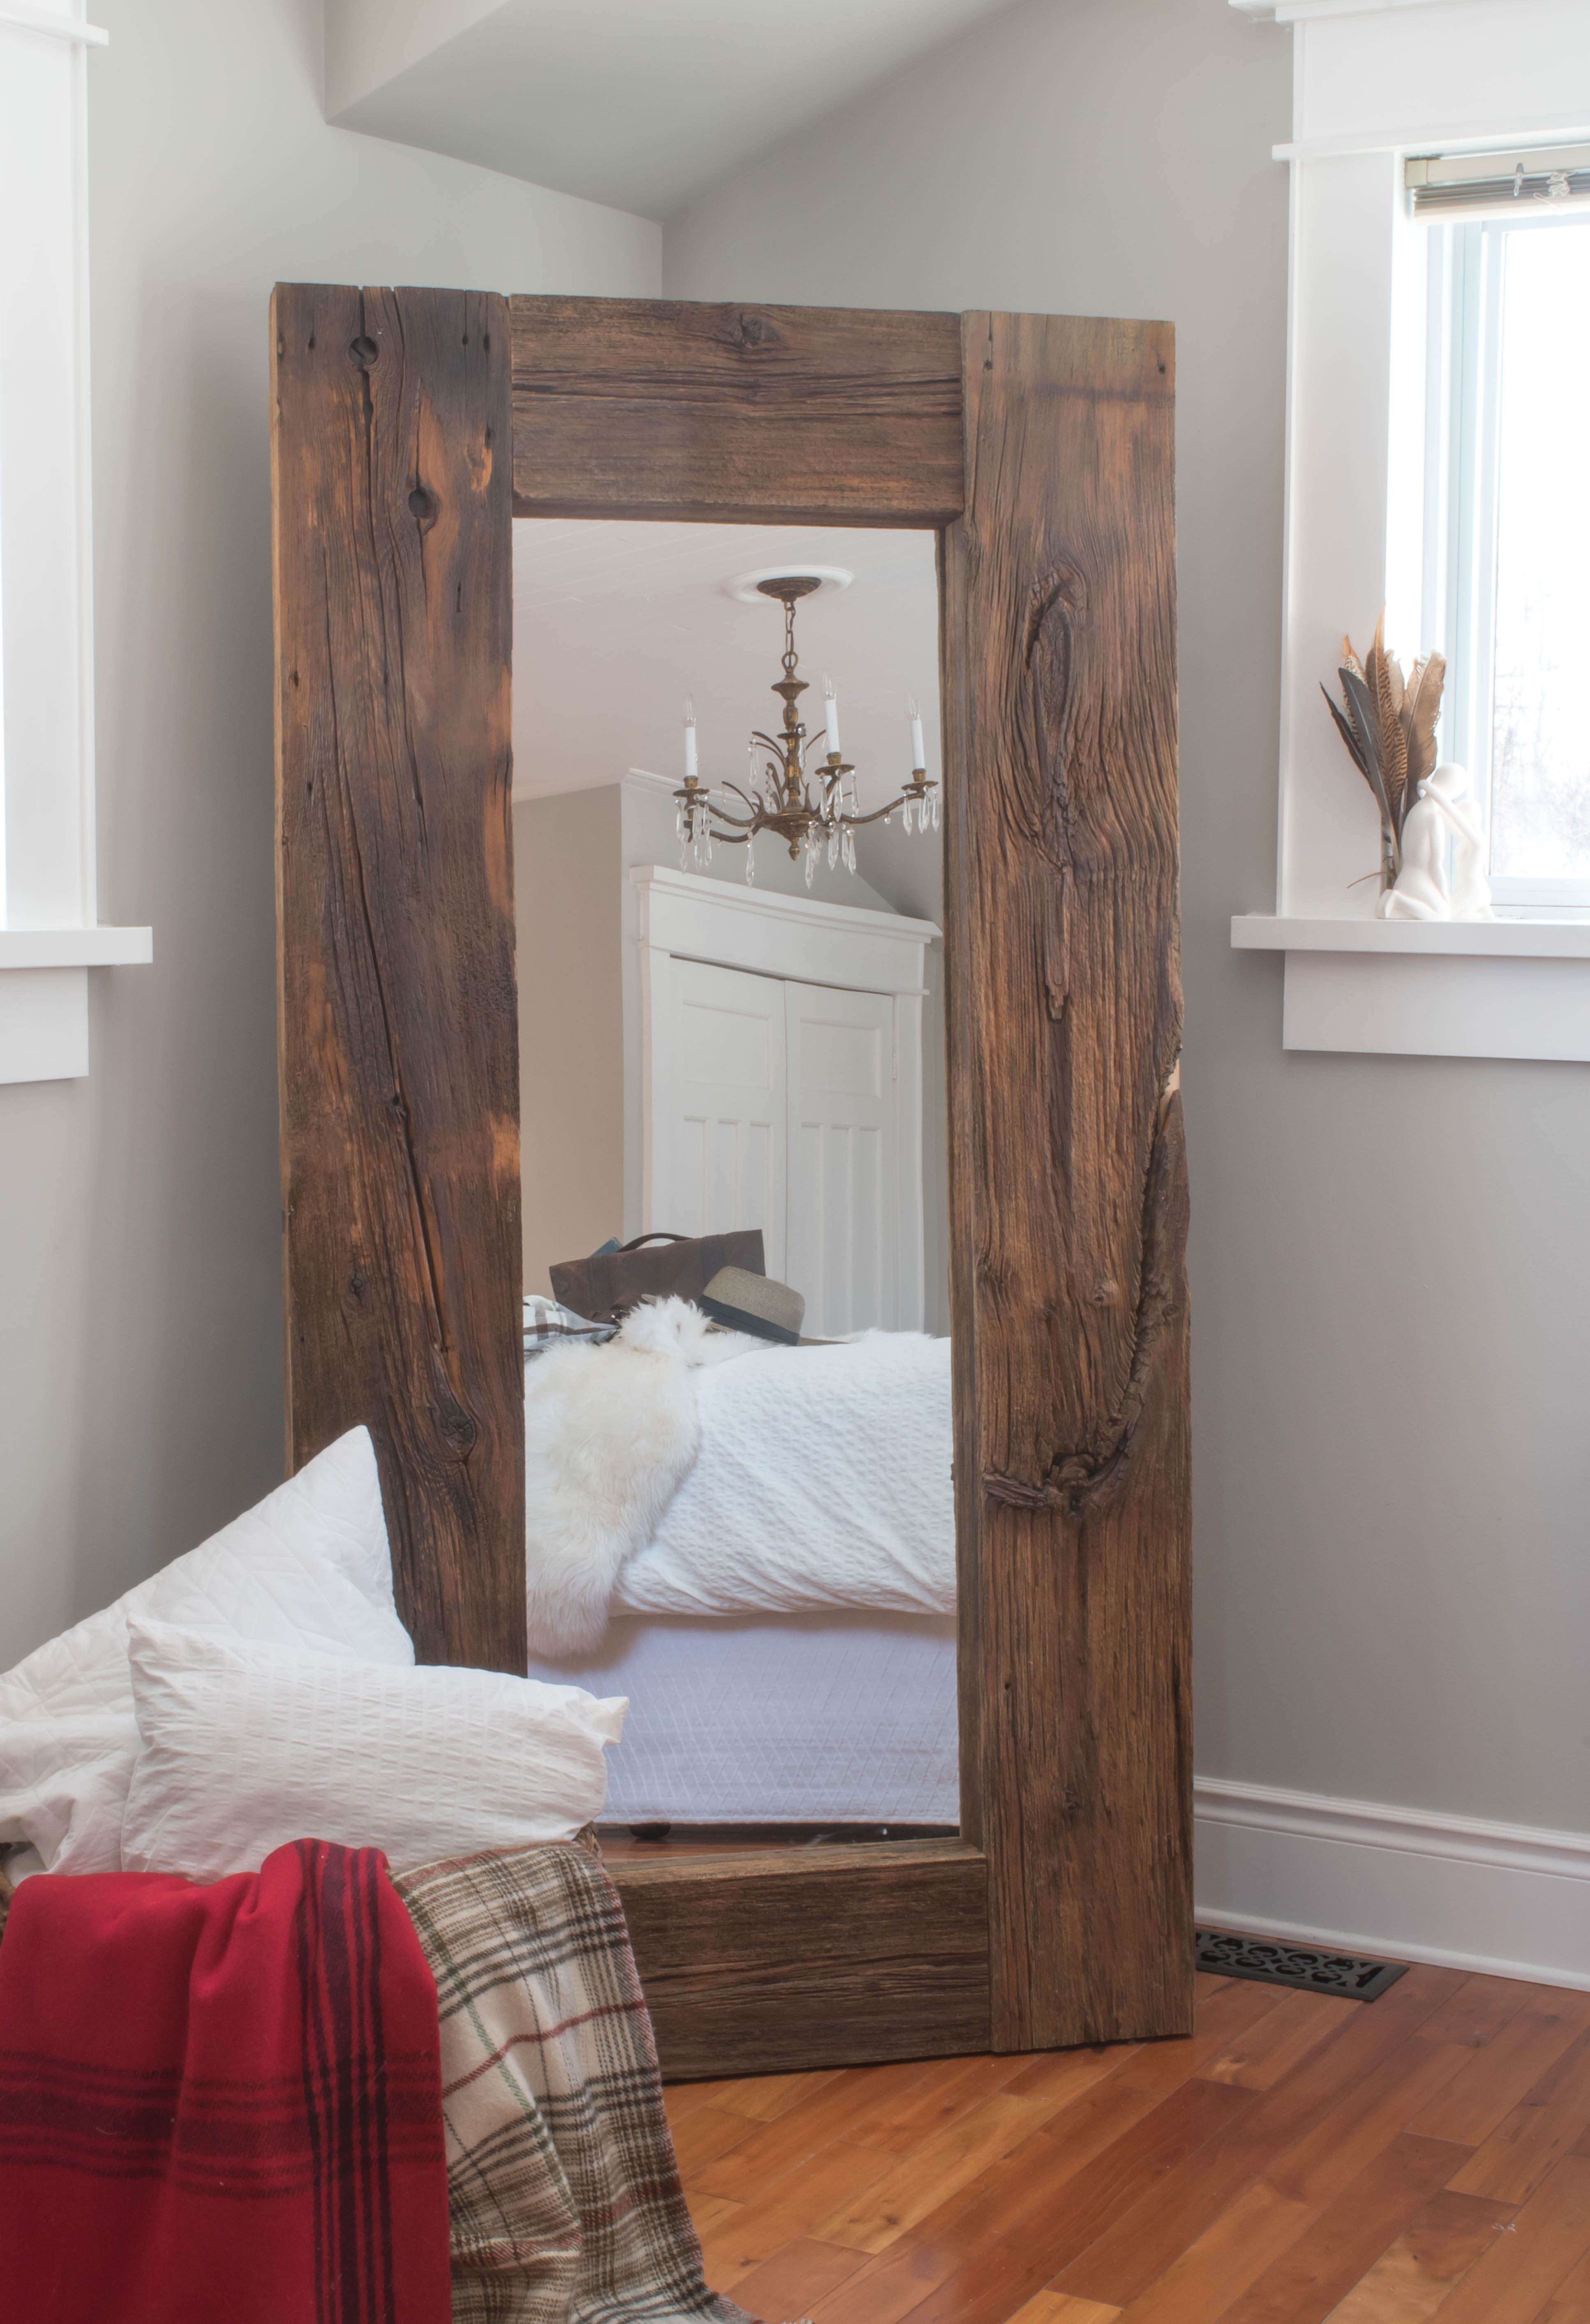 Diy Barn Board Mirror Ikea Hack Vin Yet Etc